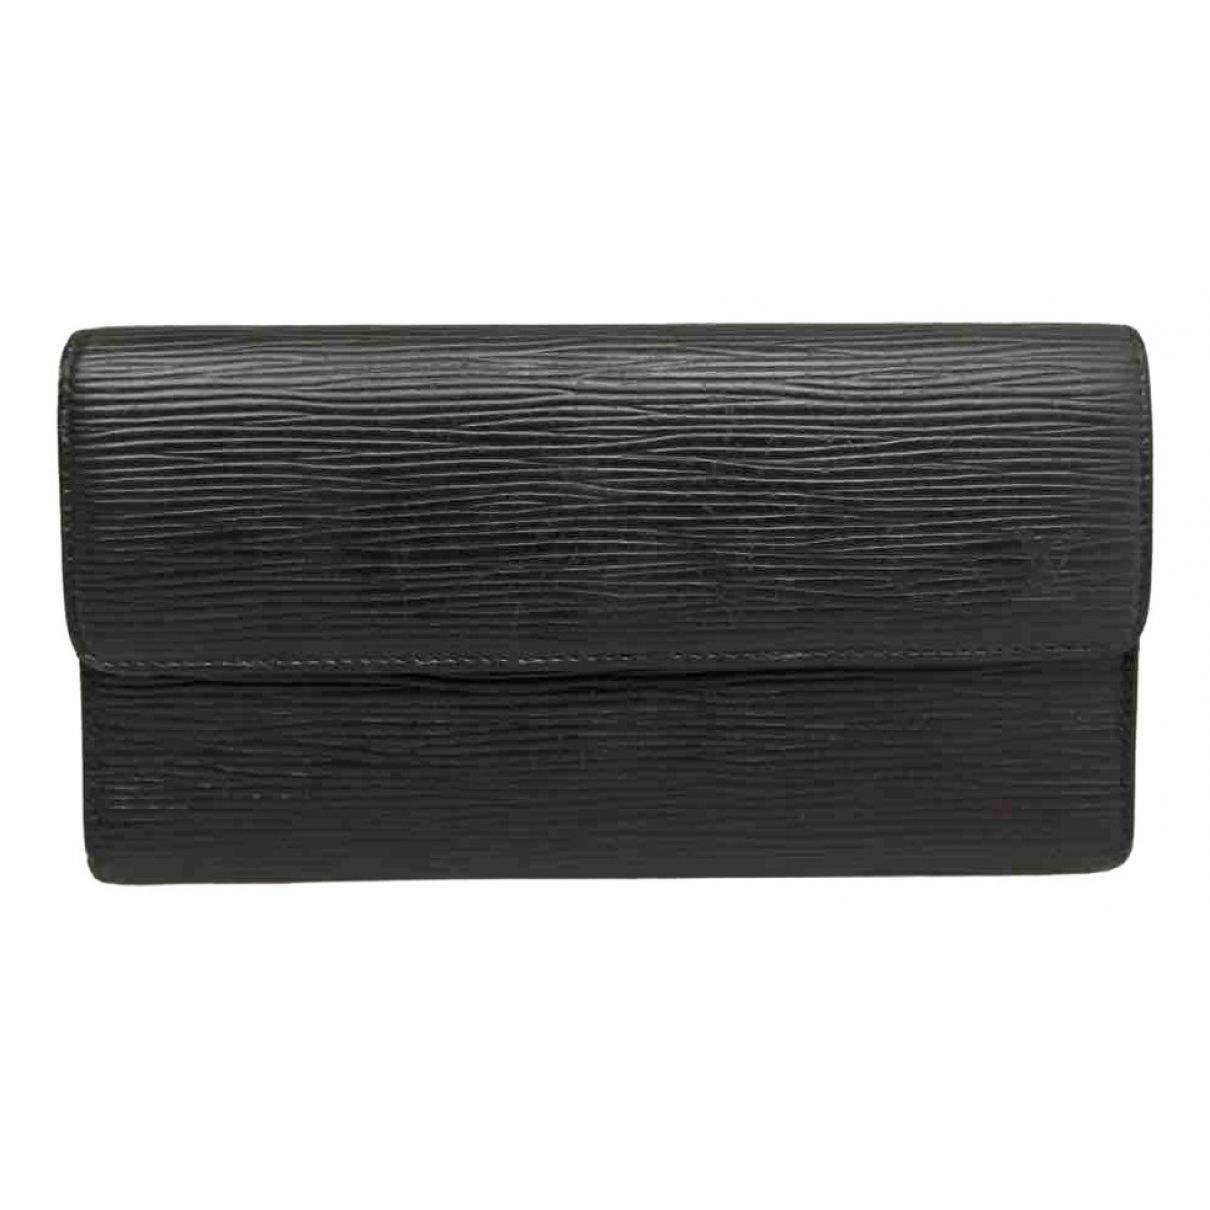 Louis Vuitton \N Black Leather wallet for Women \N